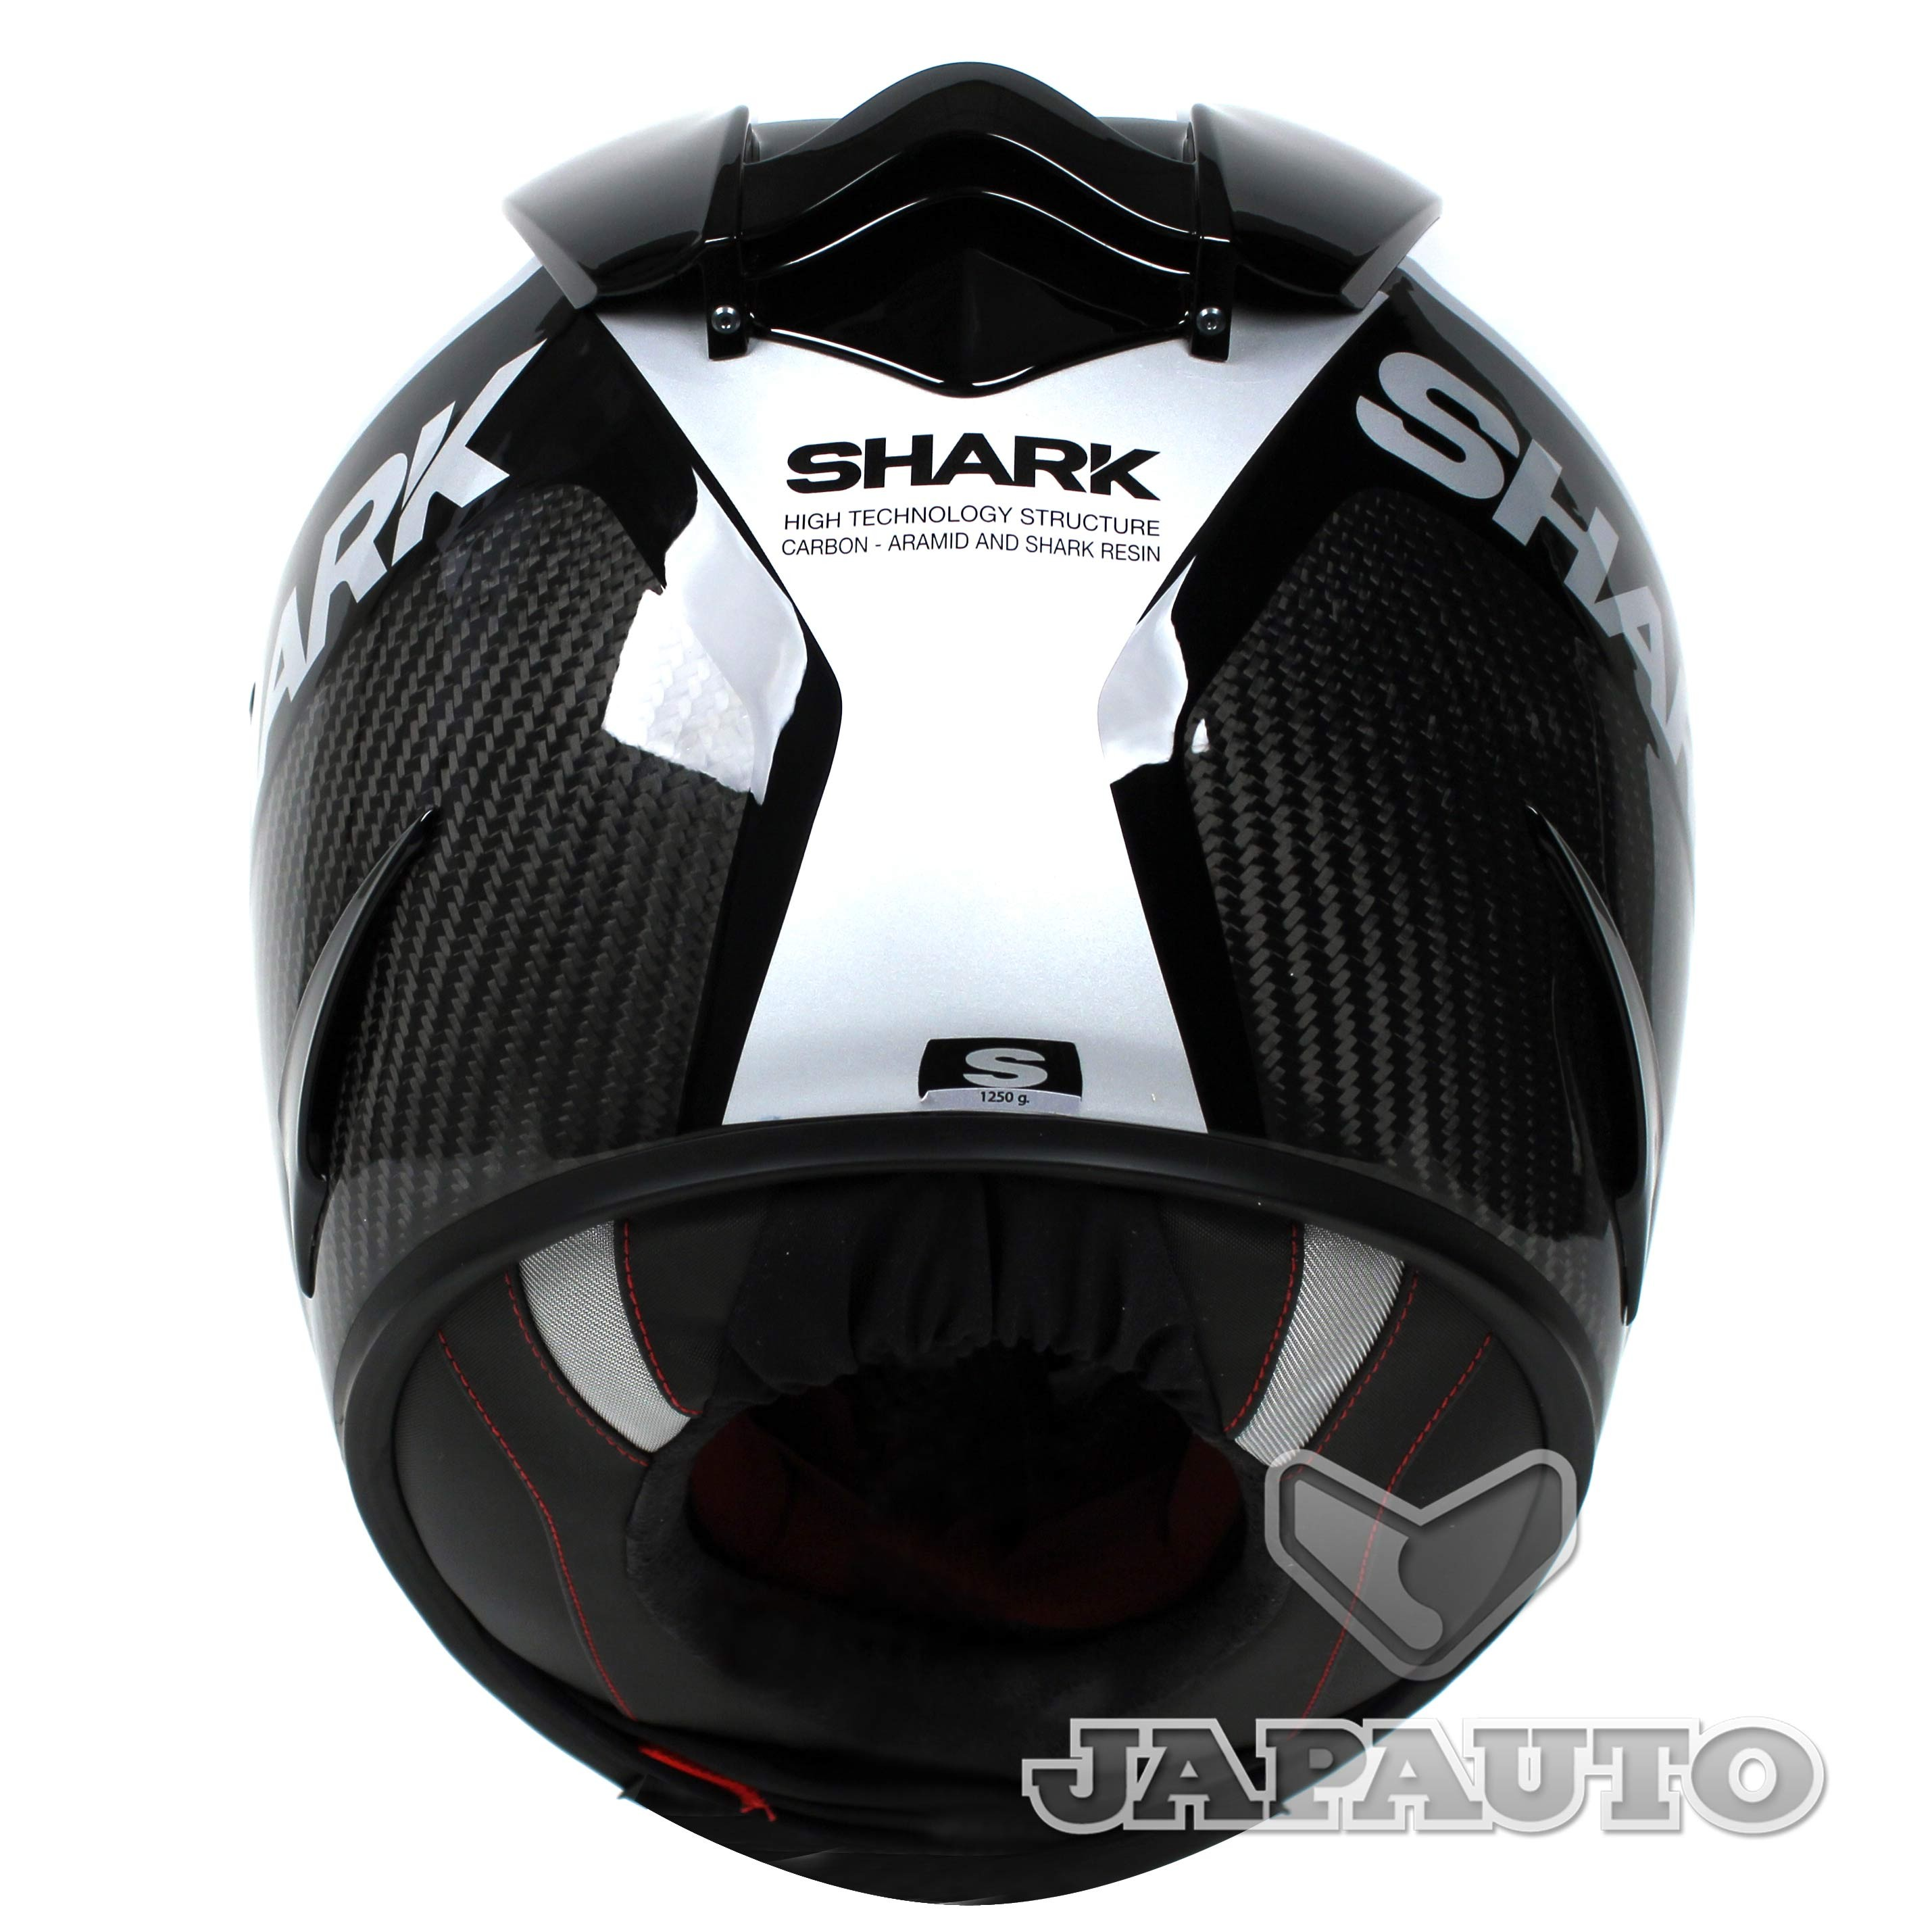 casque int gral shark race r pro carbon noir blanc rouge japauto accessoires equipement. Black Bedroom Furniture Sets. Home Design Ideas